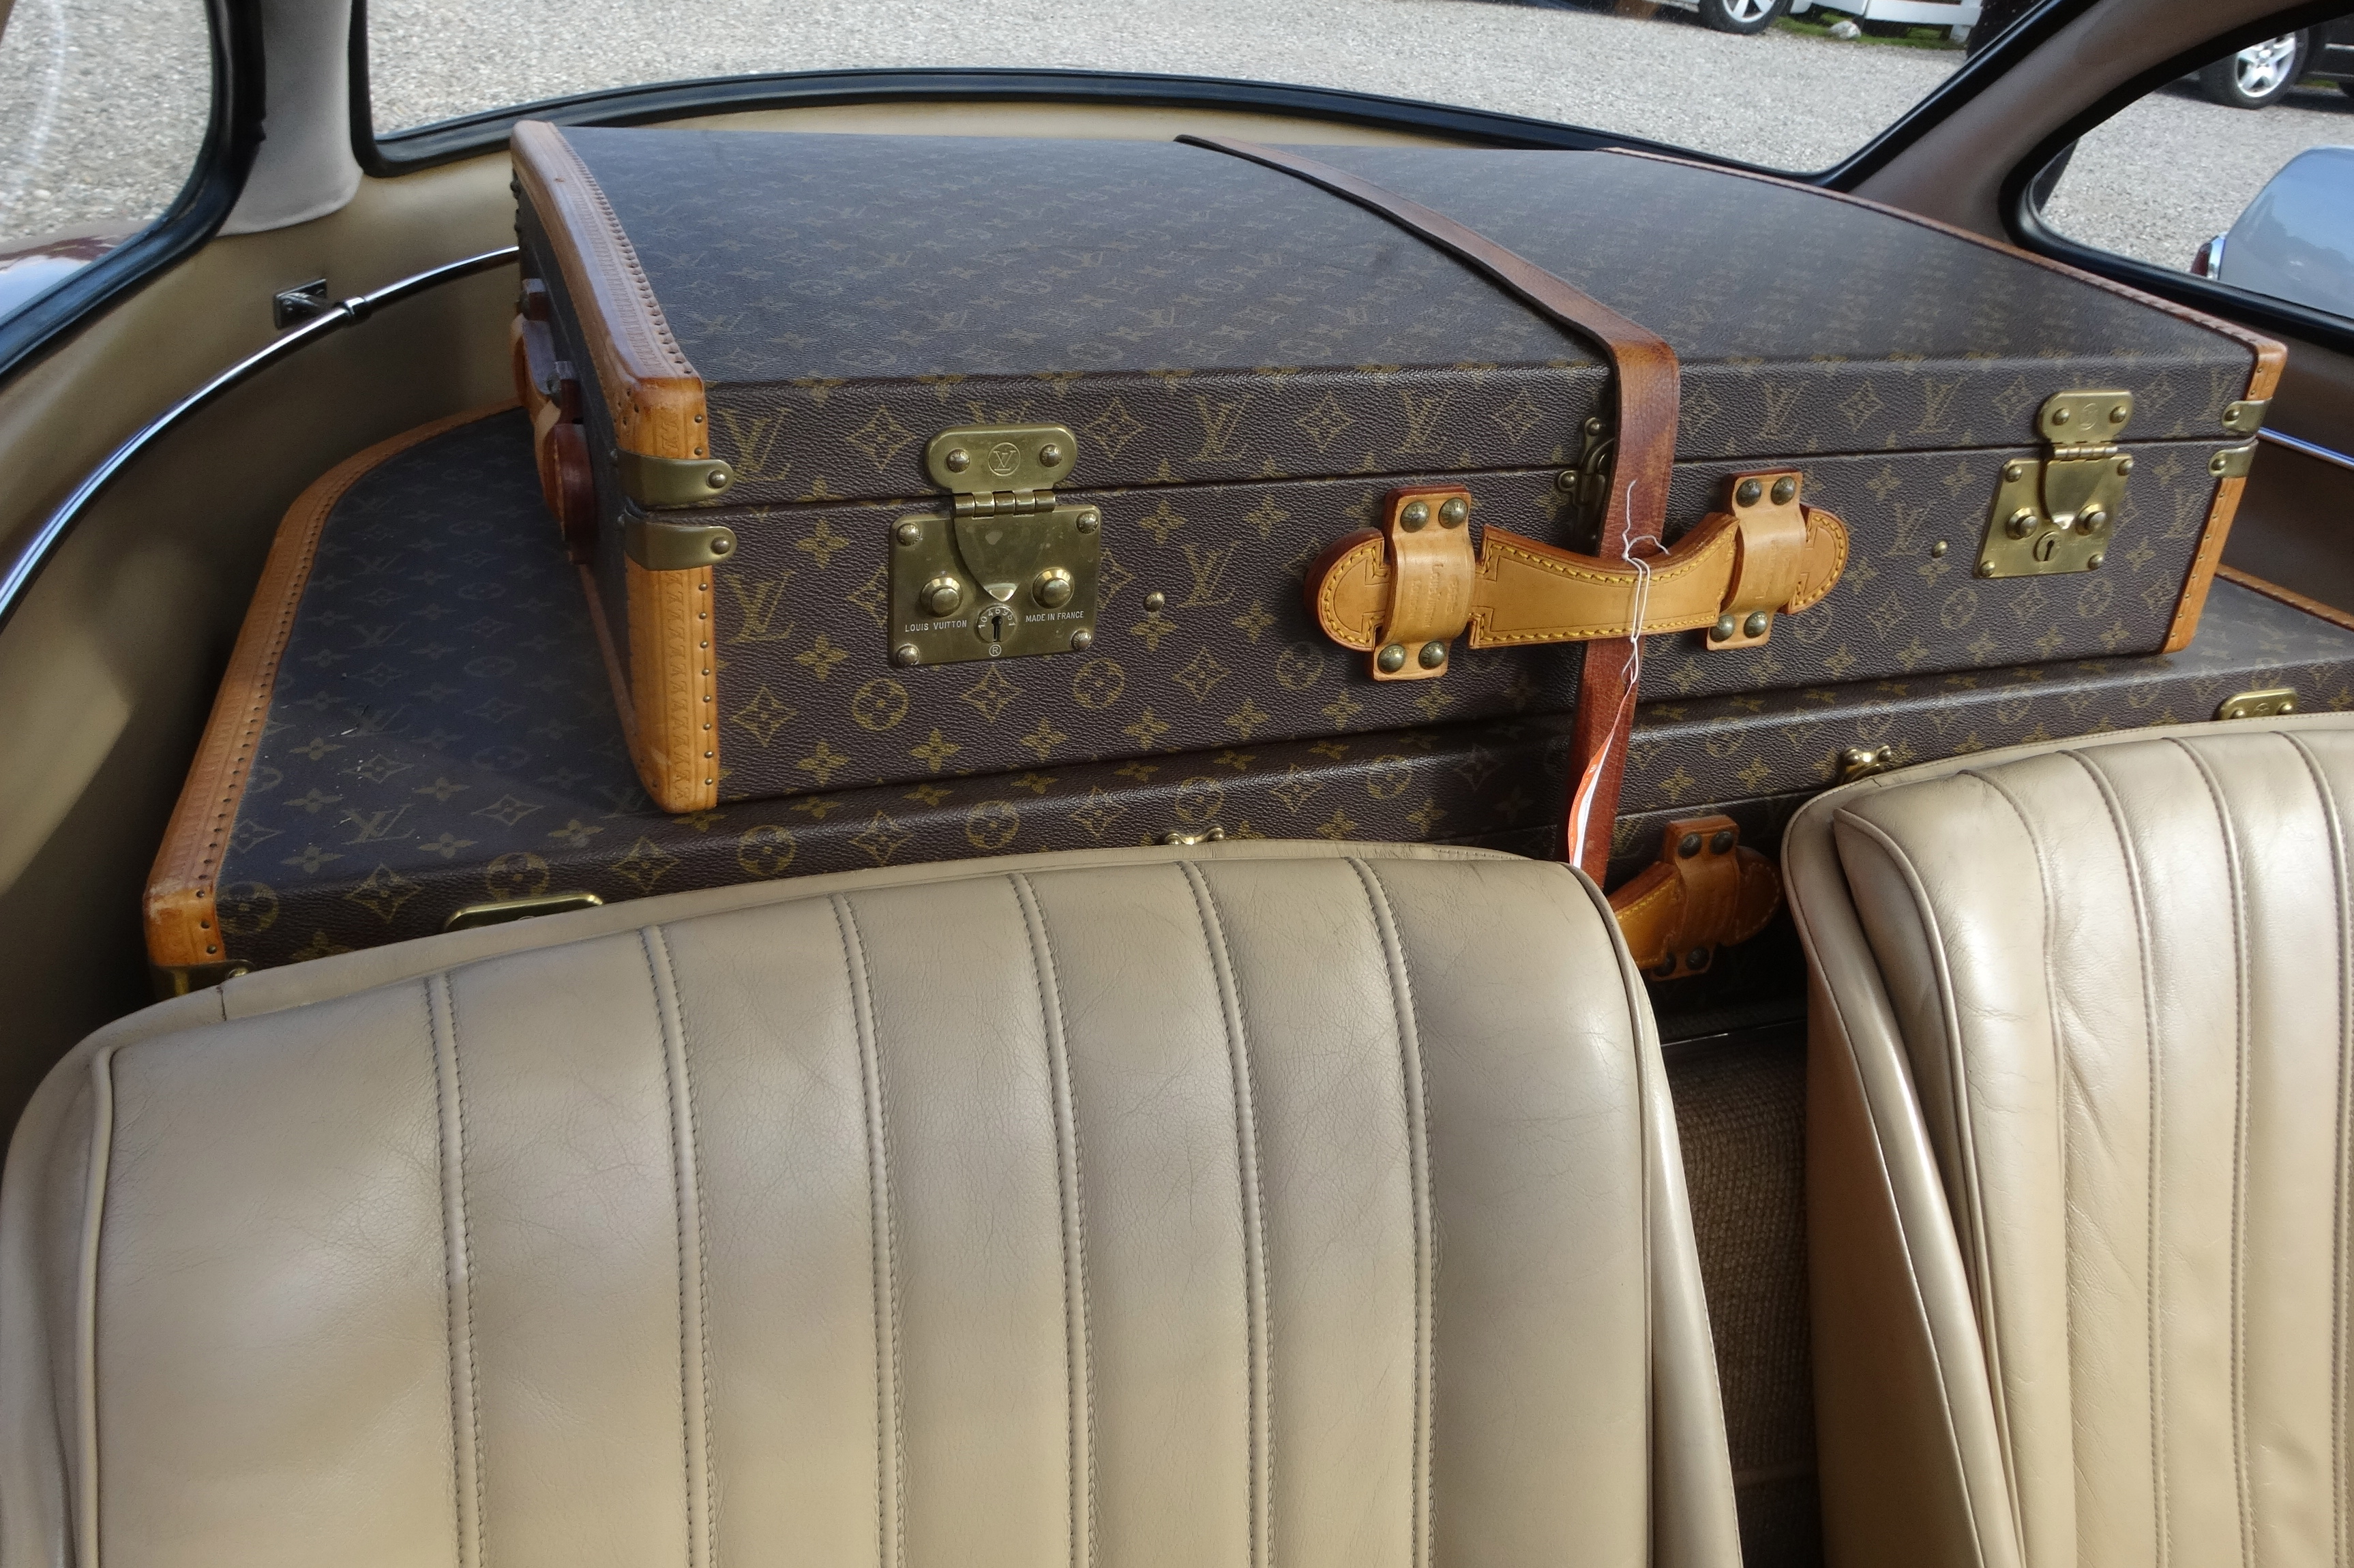 Louis Vuitton luggage set / Koffersatz